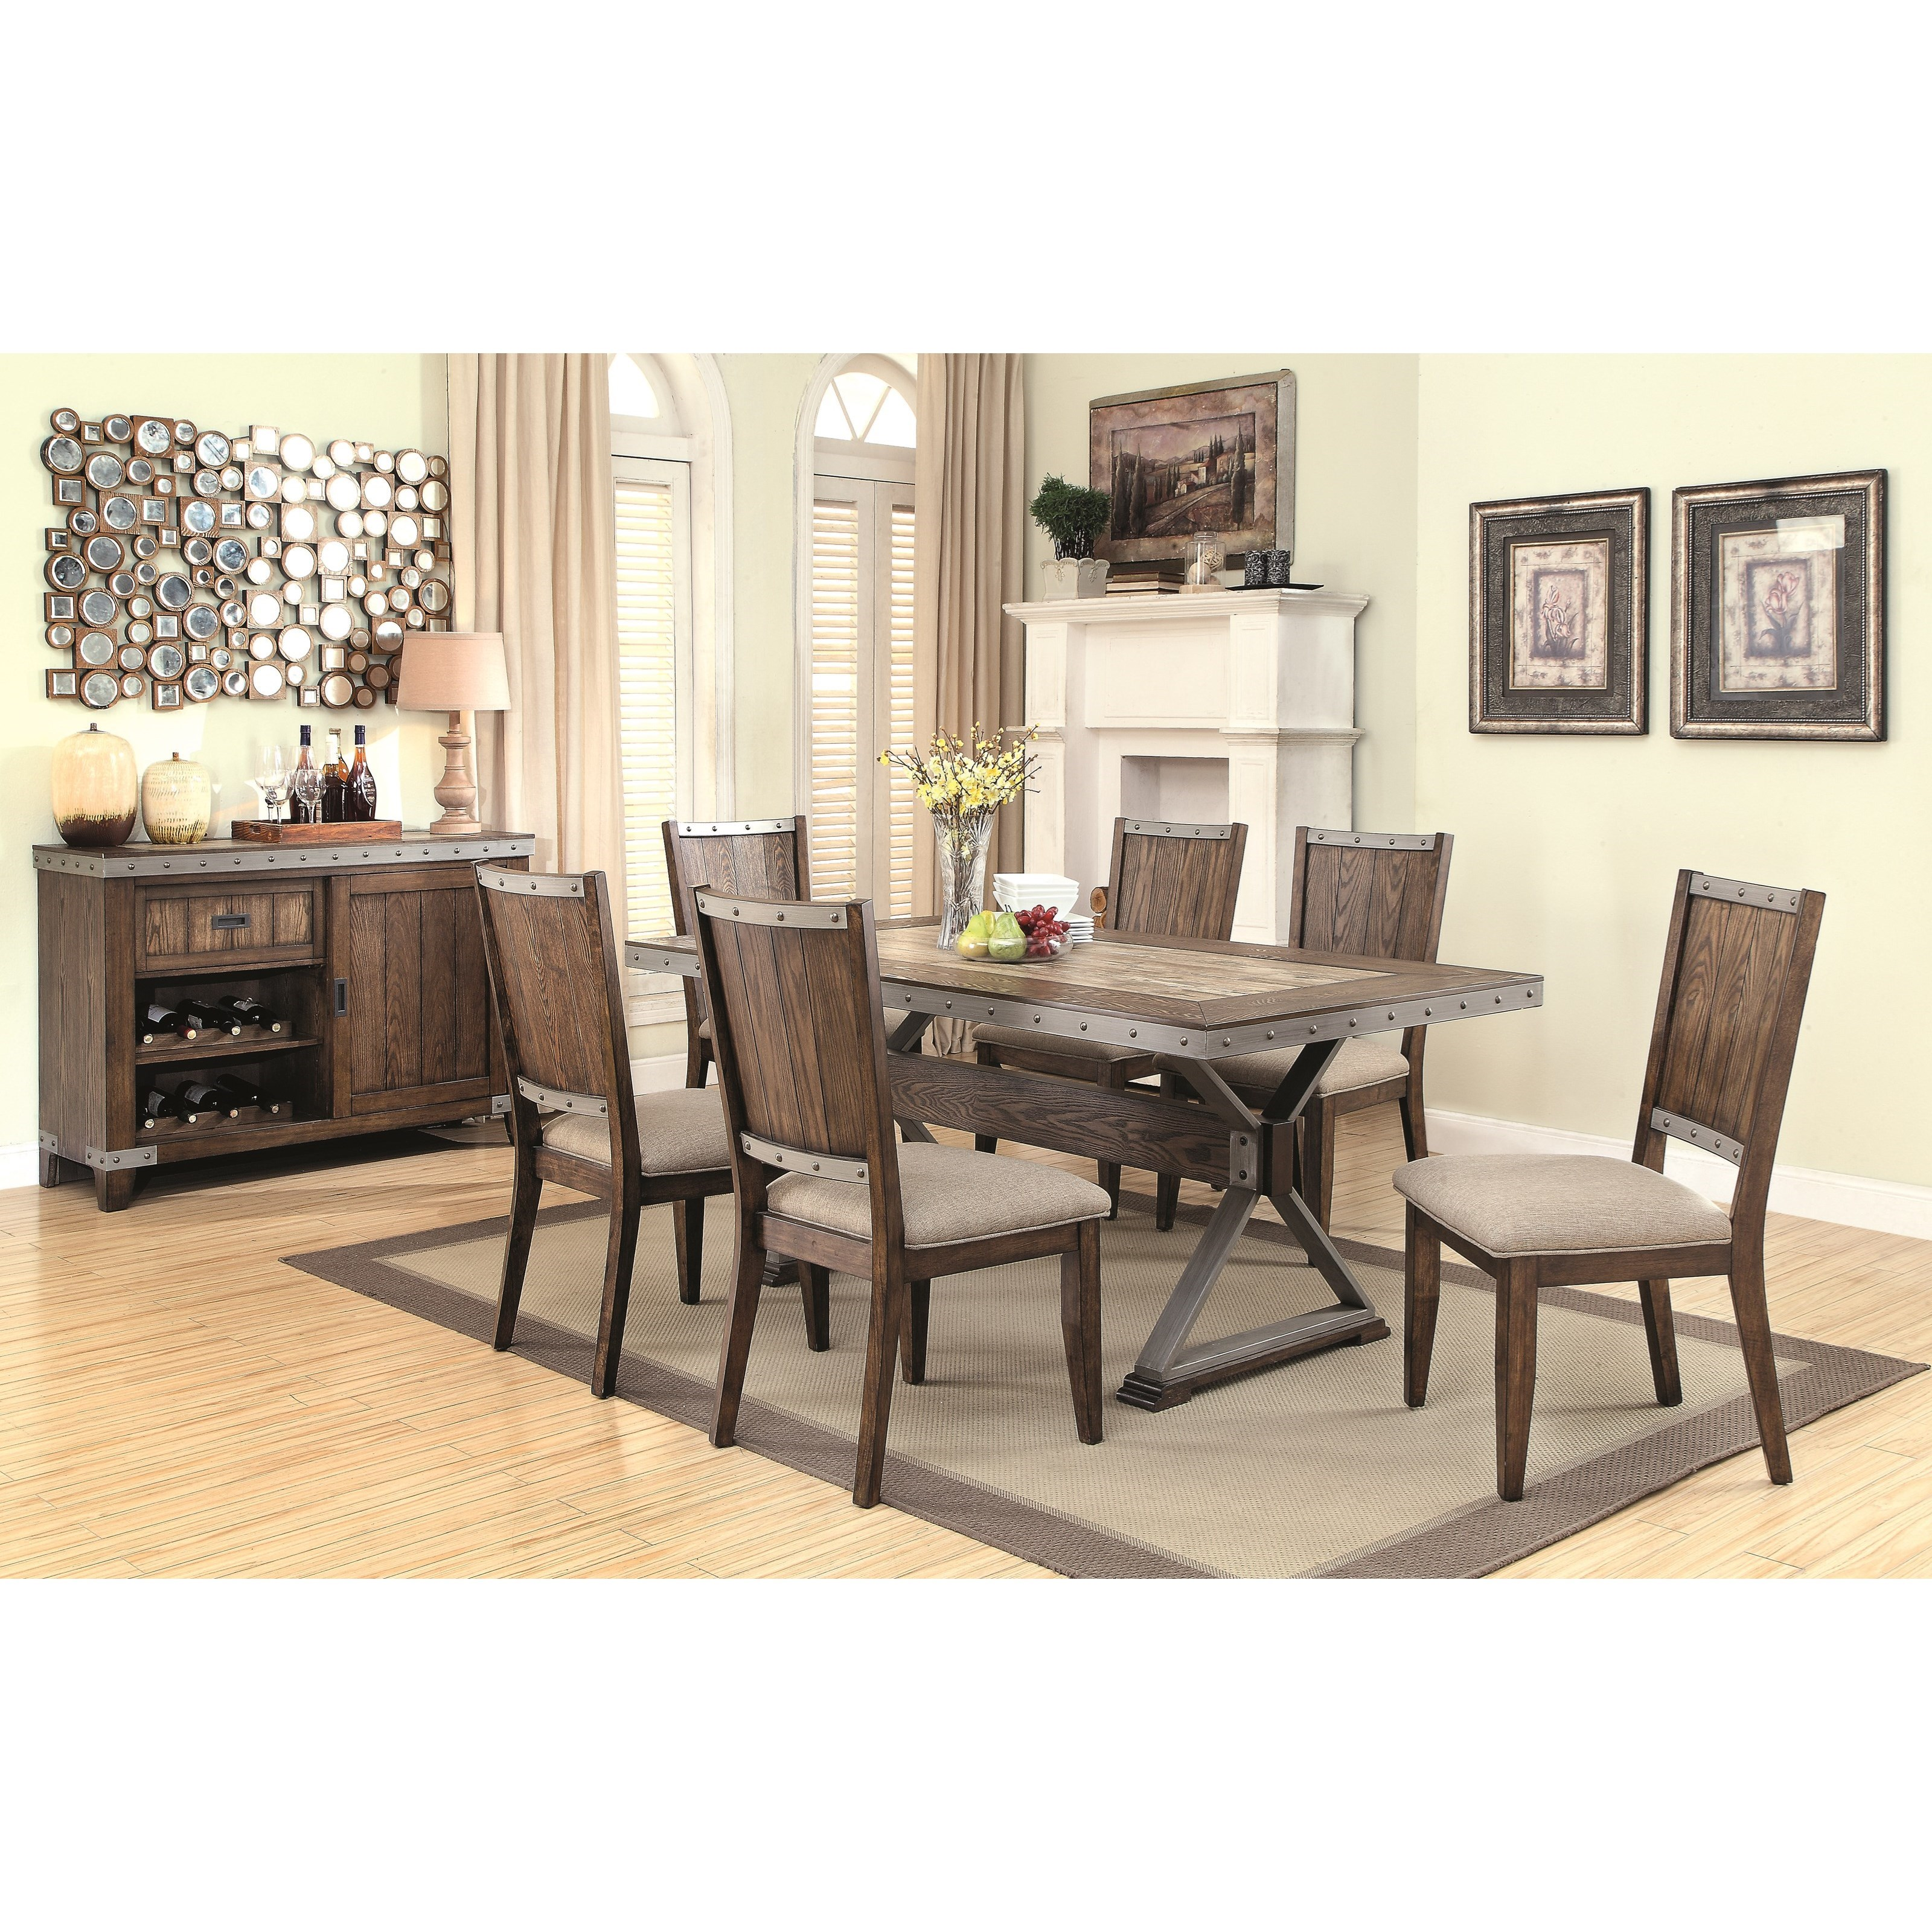 Coaster beckett casual dining room group dunk bright for Casual dining room